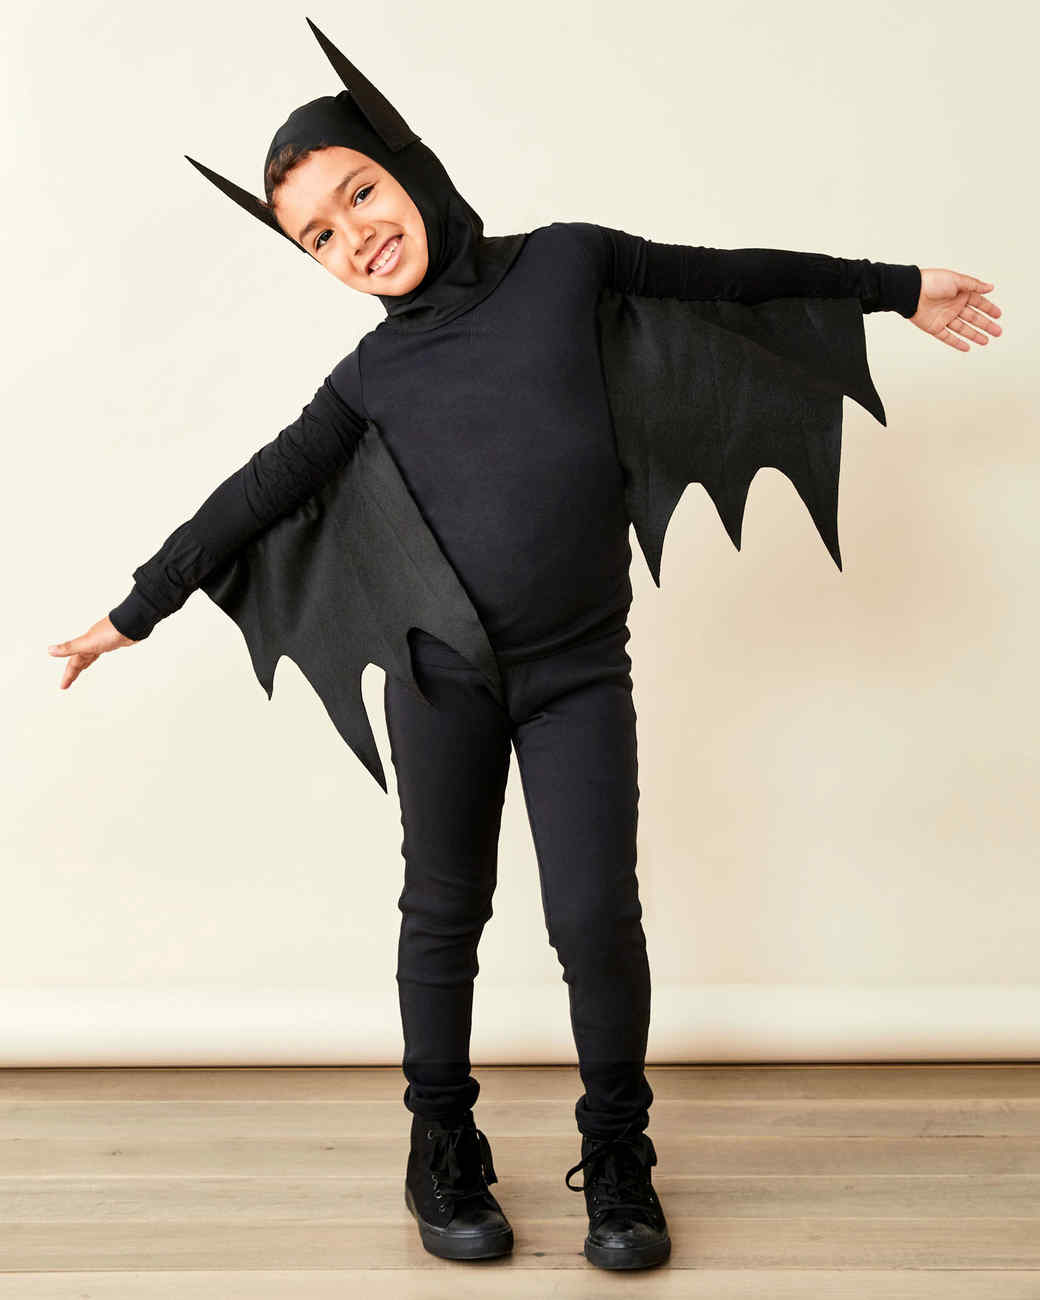 Martha Stewart Halloween Costume 2020 The Cut Bat Costume | Martha Stewart